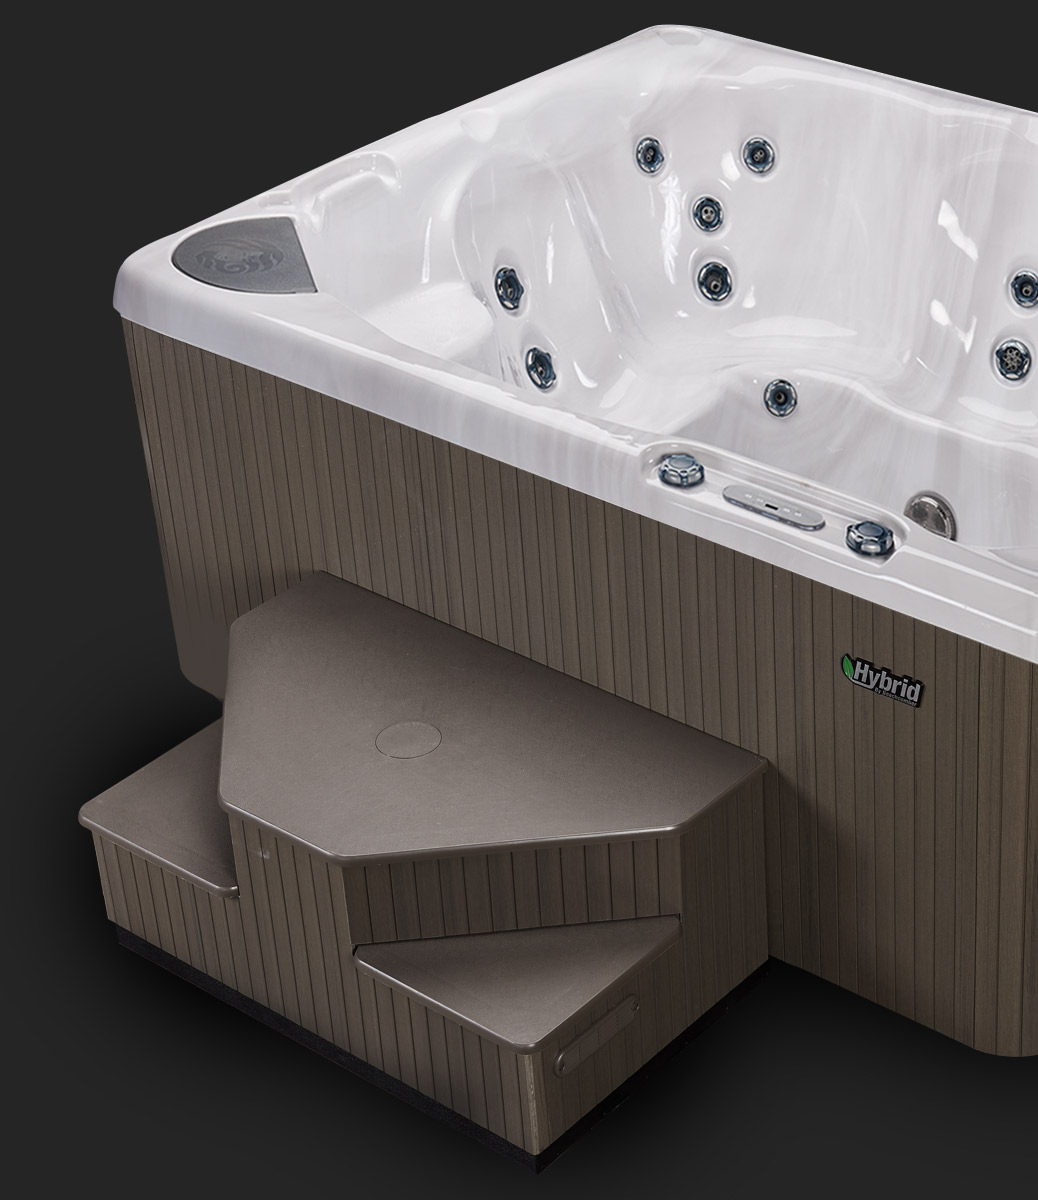 Beachcomber Hot Tubs Modèle 380